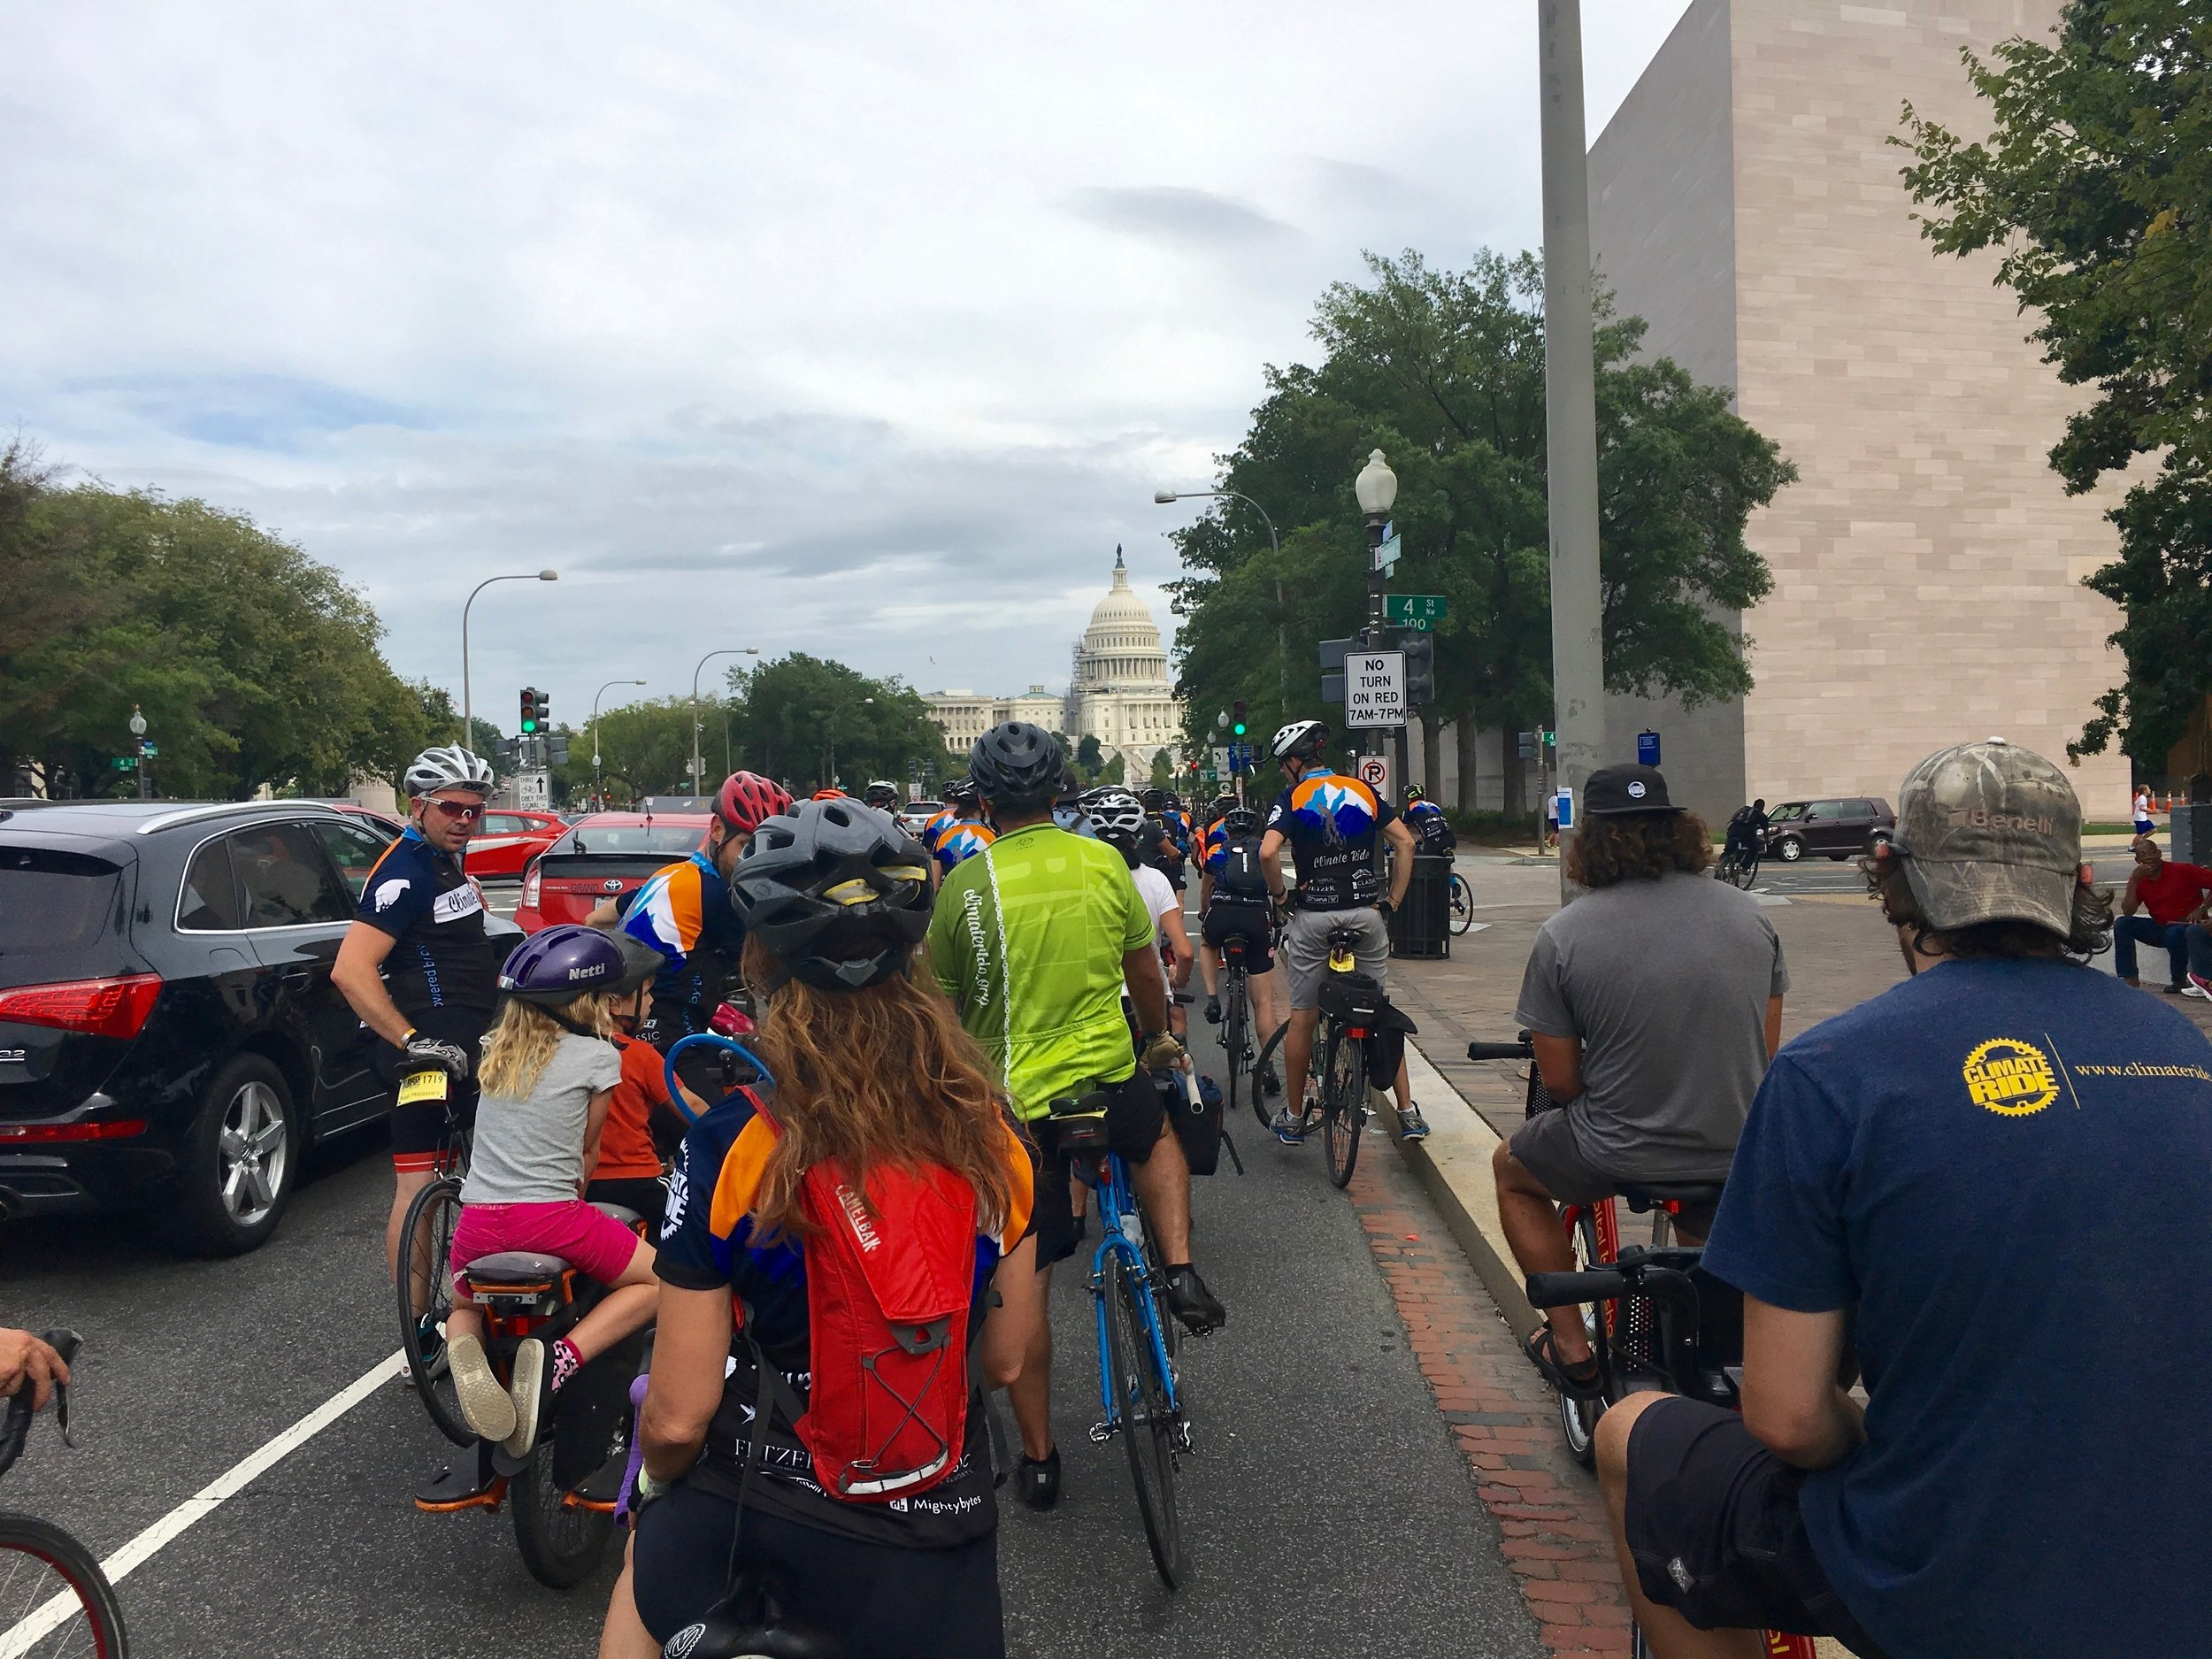 On the way to the Capitol